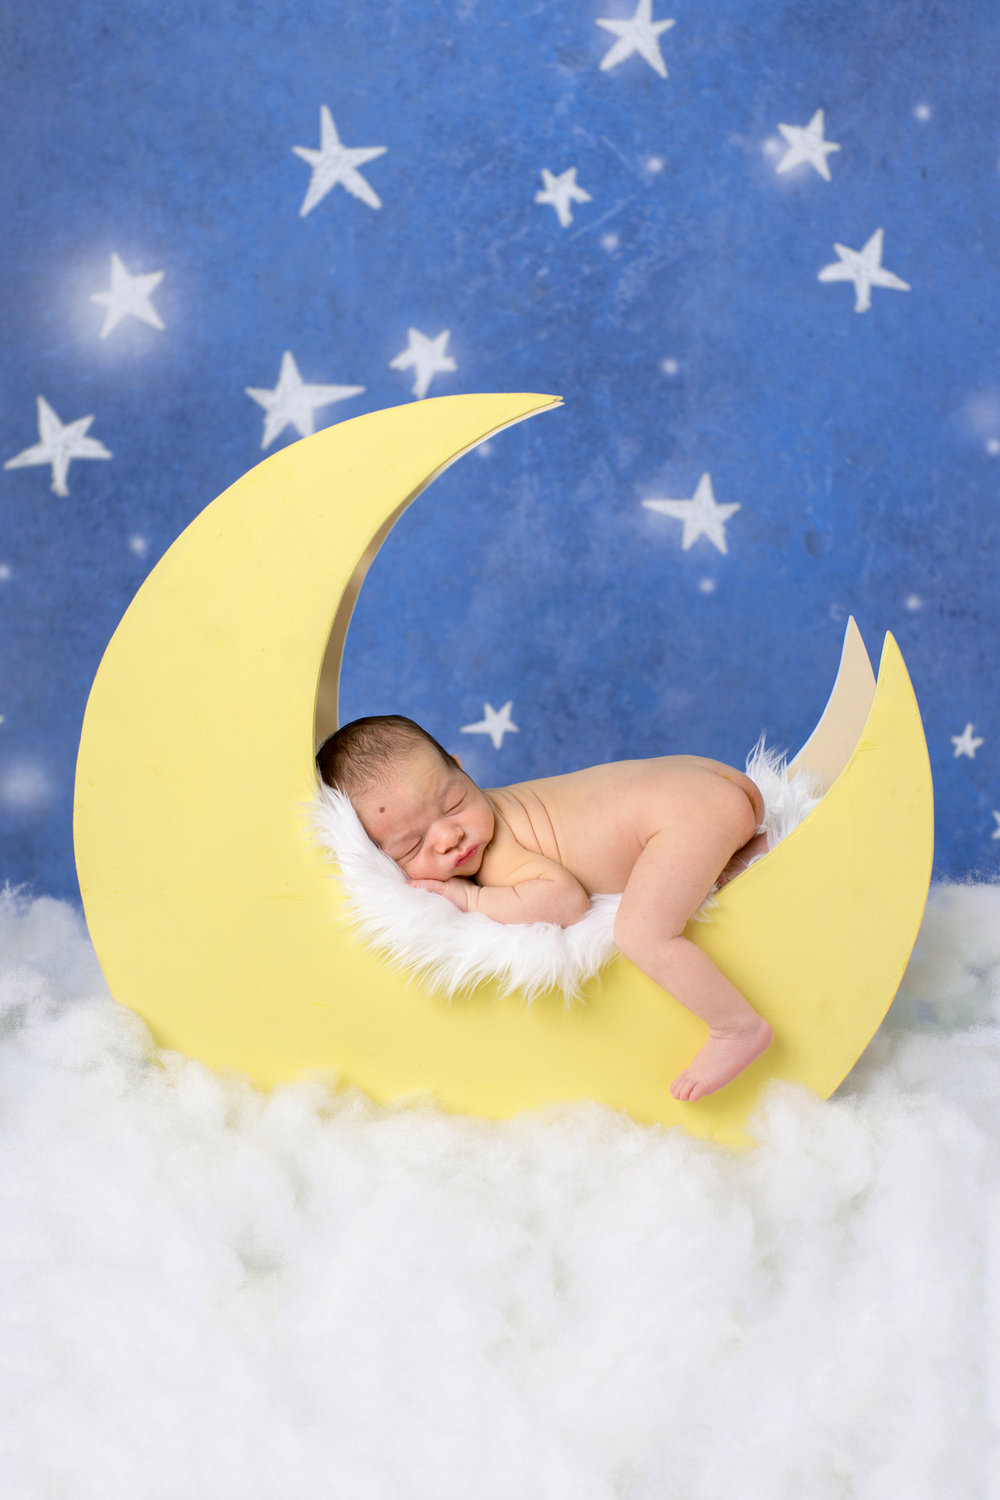 NEWBORN PHOTOGRPAHY | Solar System Themed Nursery, Colorful Newborn Photos